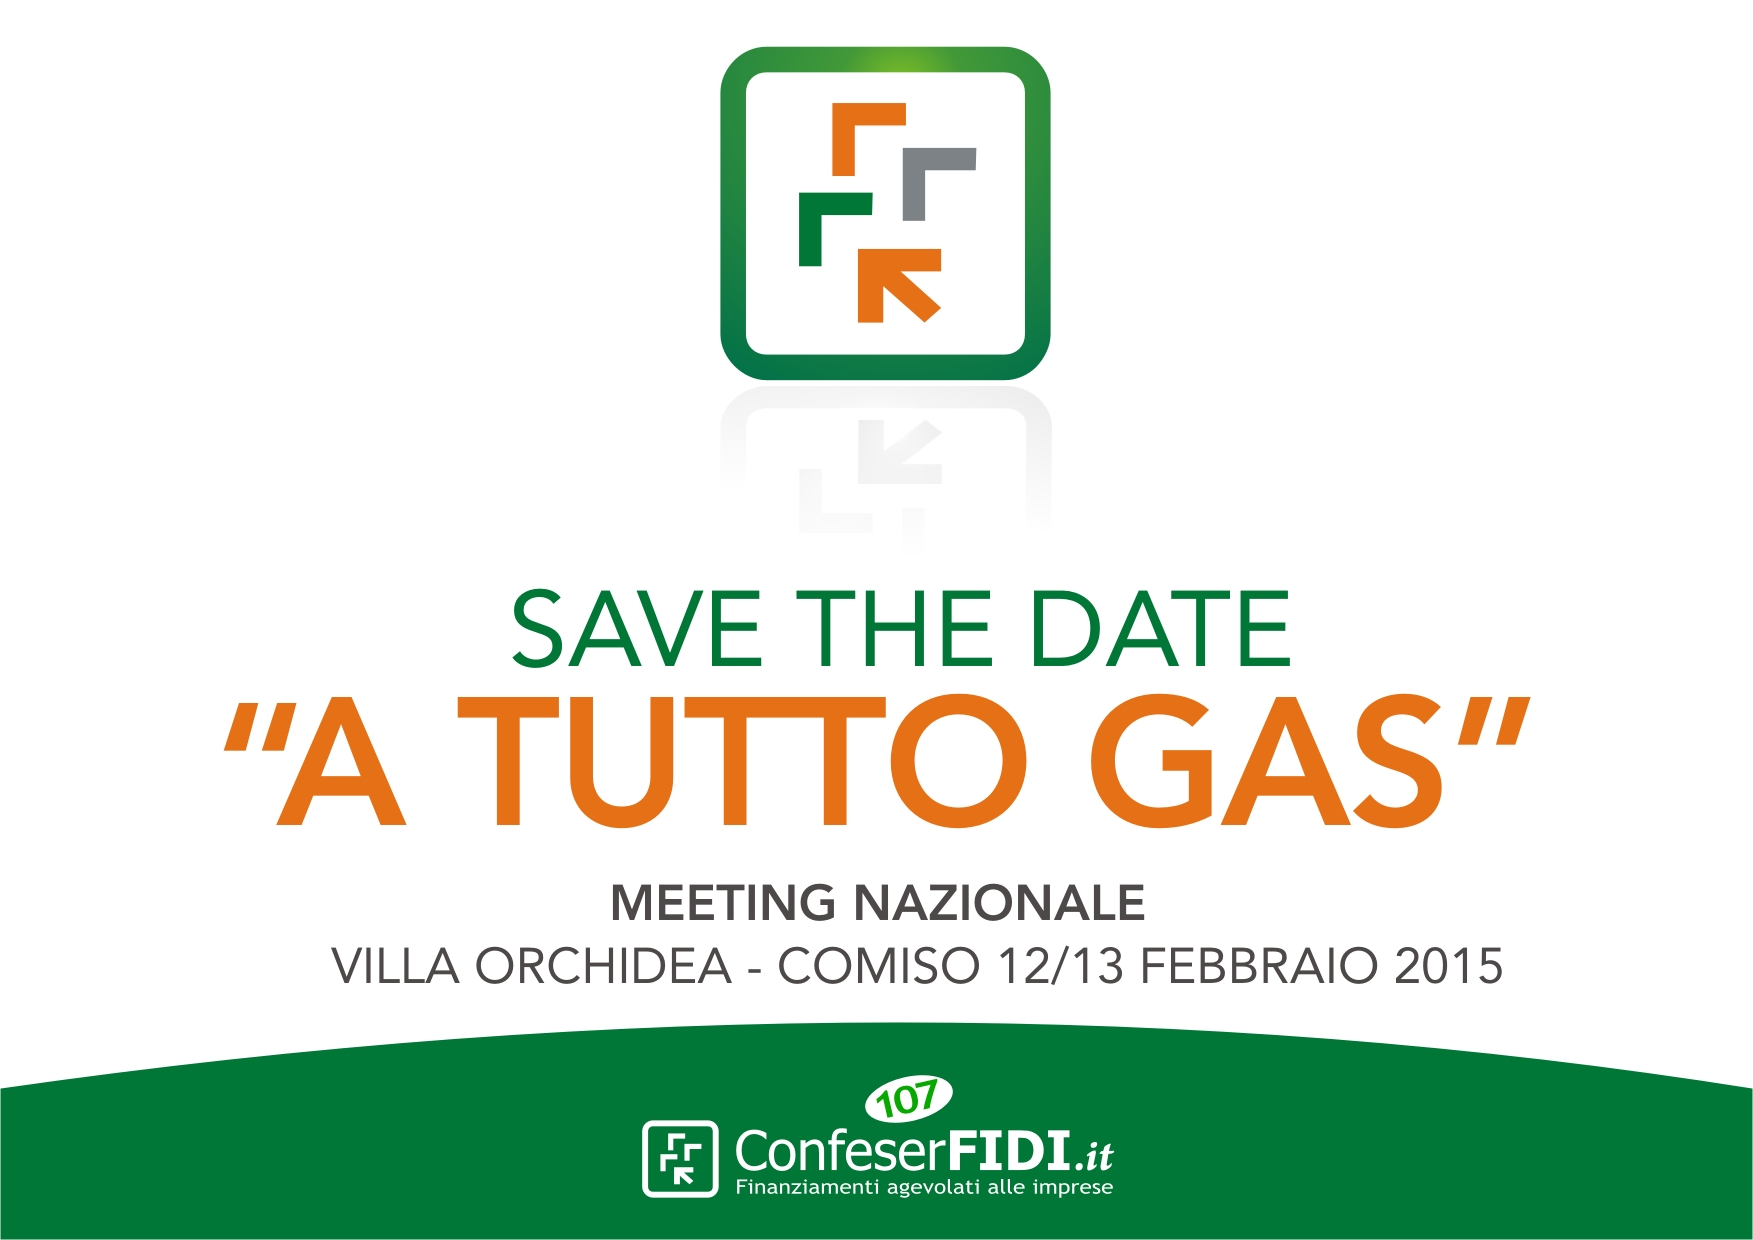 """CONFESERFIDI MEETING NAZIONALE - SAVE THE DATE """"A TUTTO GAS"""""""